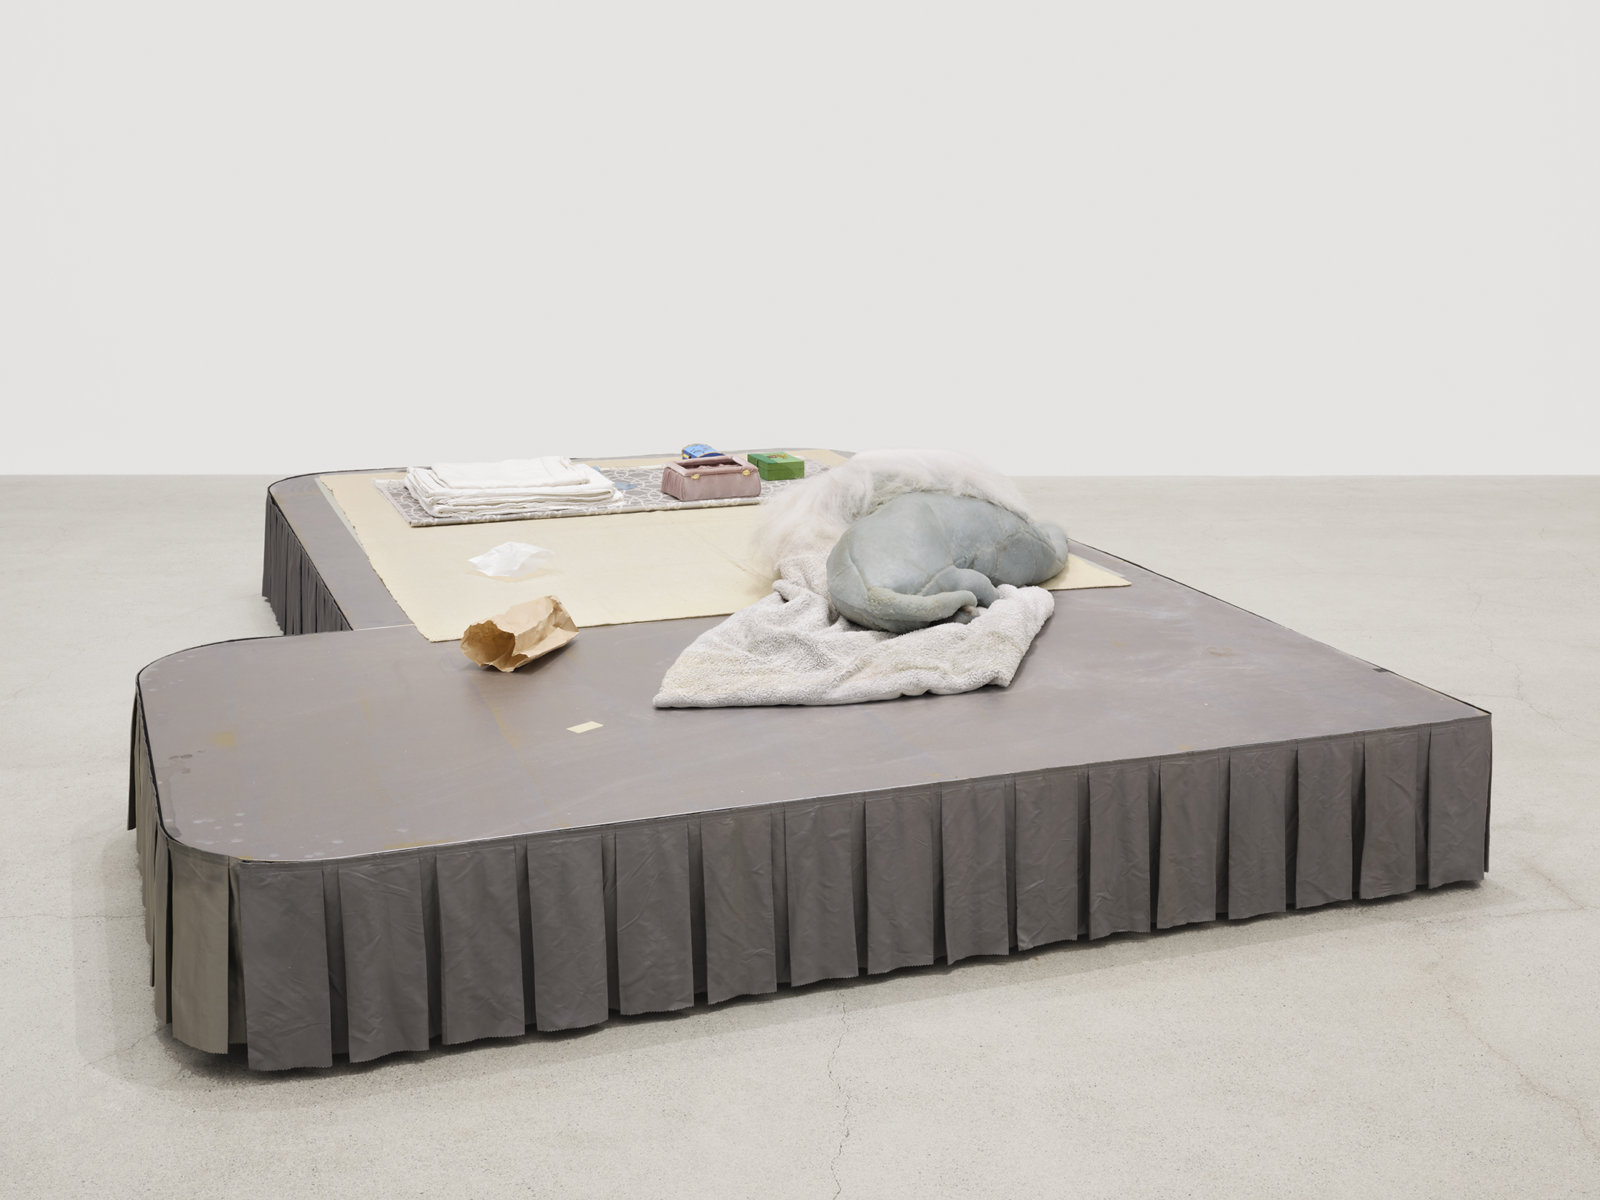 Liz Magor, Coiffed, 2020, painted plywood, fabric skirting, silicone rubber, artificial hair, acrylic throw, woollen blankets, silver fabric, linen, jewellery boxes, costume jewellery, packaging materials, 27 x 132 x 96 in. (69 x 335 x 244 cm) by Liz Magor